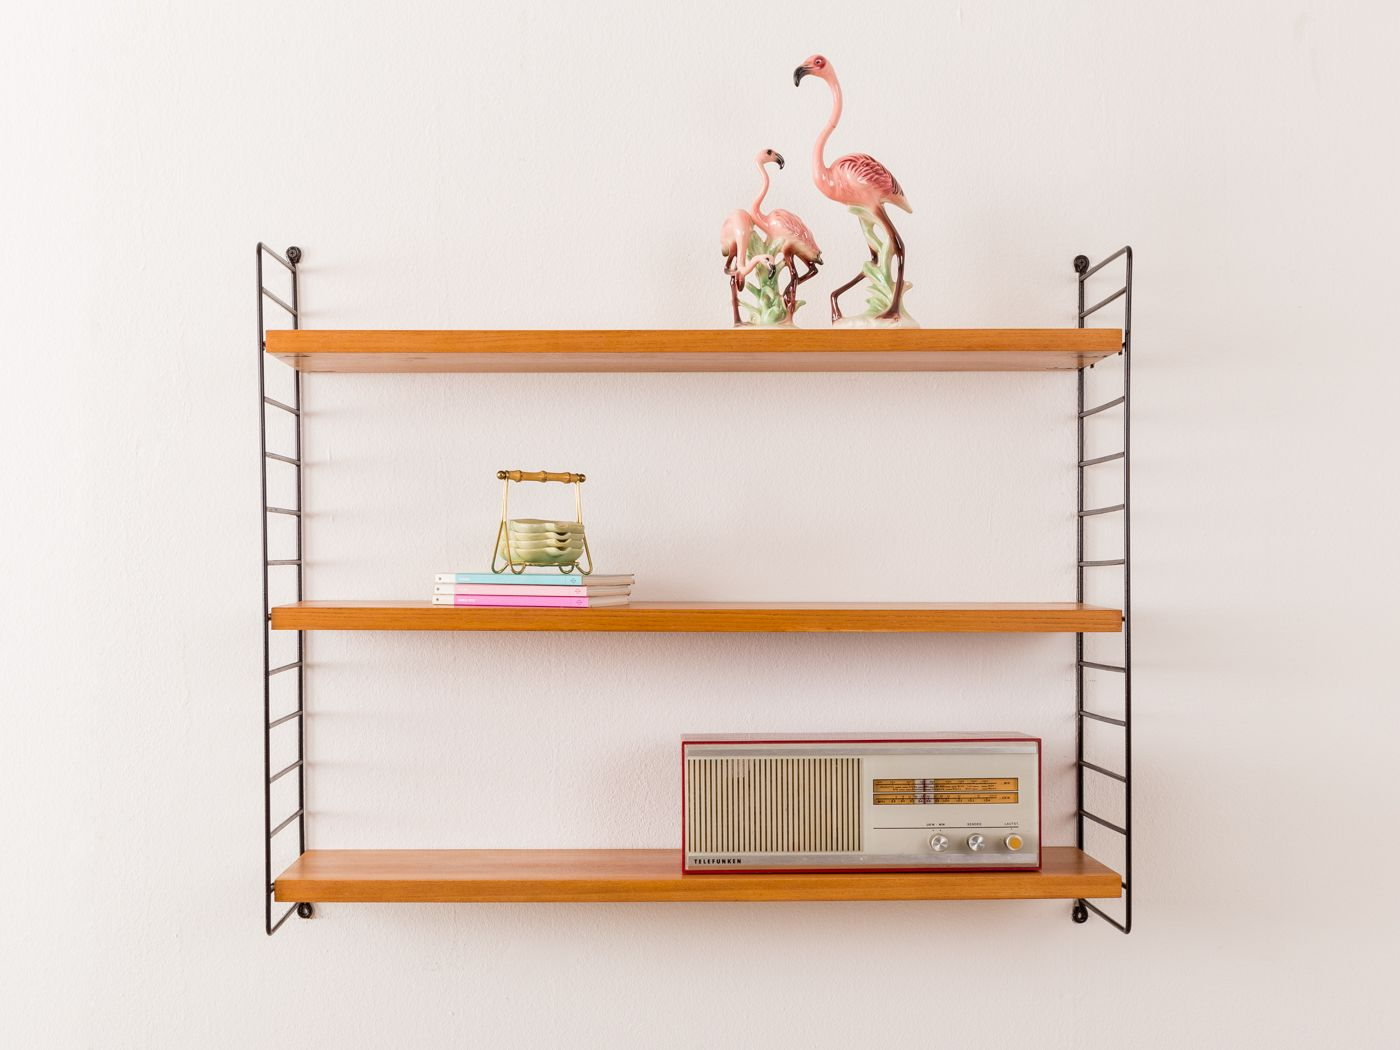 String Regal Vitrine Wall Shelf By Kajsa Nils Nisse Strinning For String 1960s